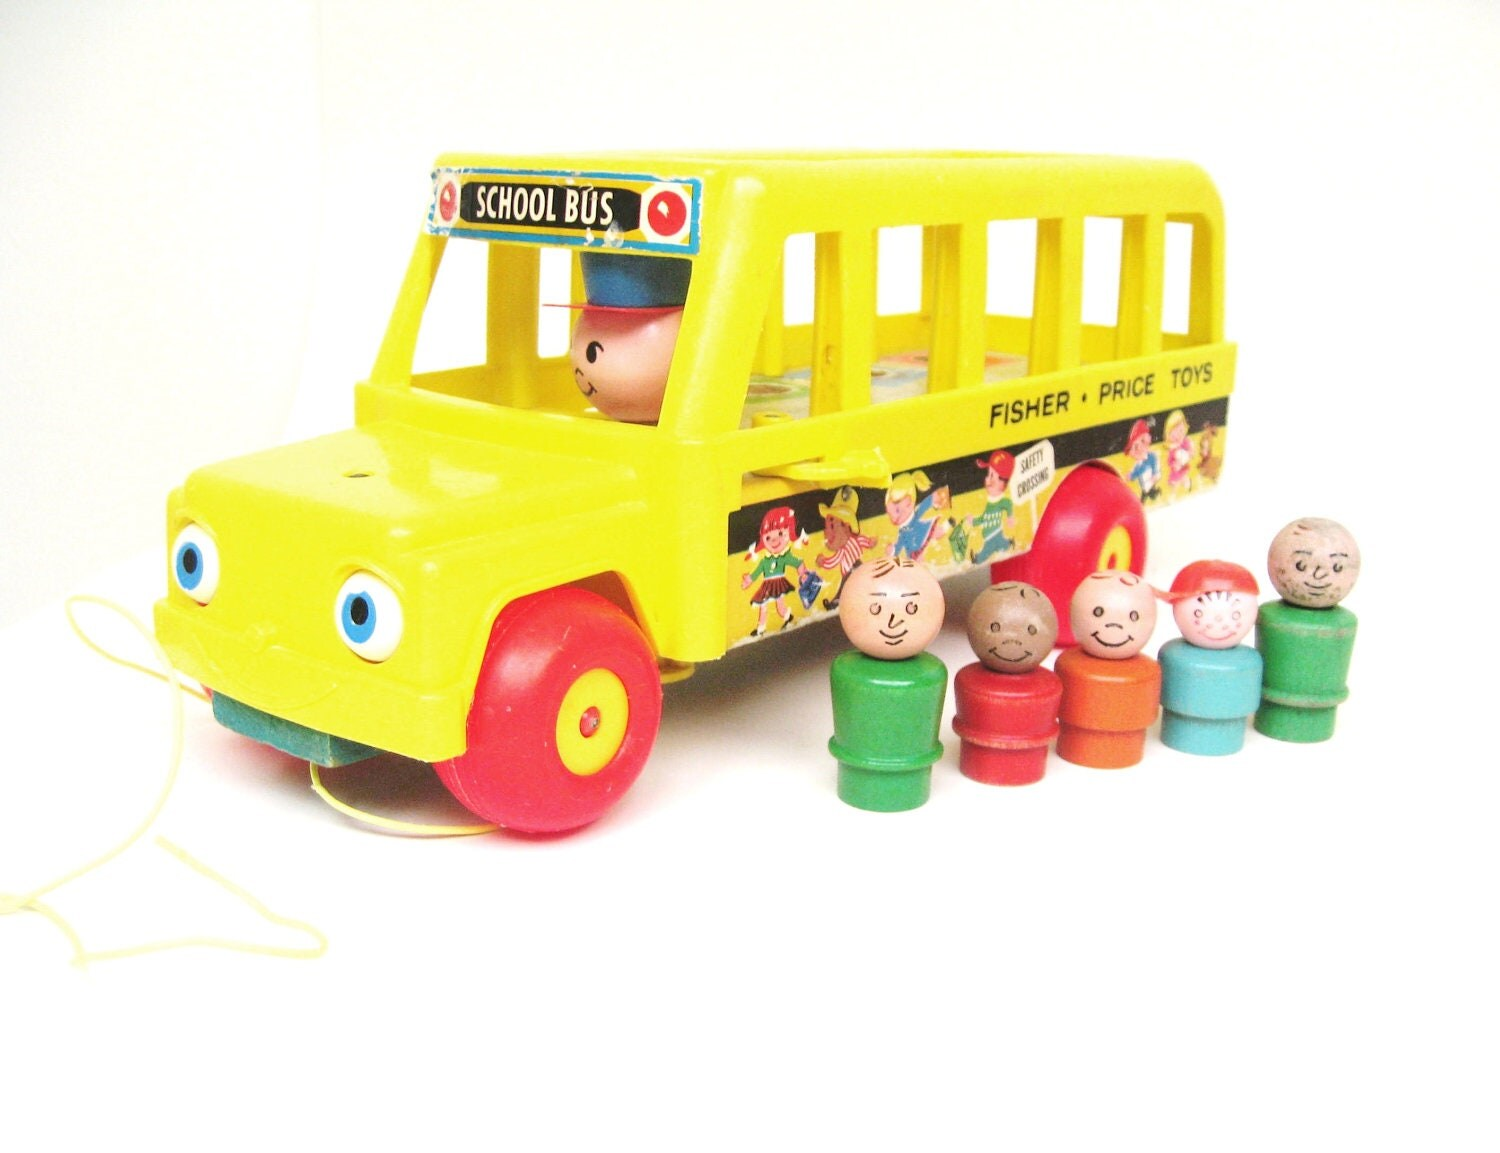 Vintage Fisher Price School Bus with Passengers - toysofthepast